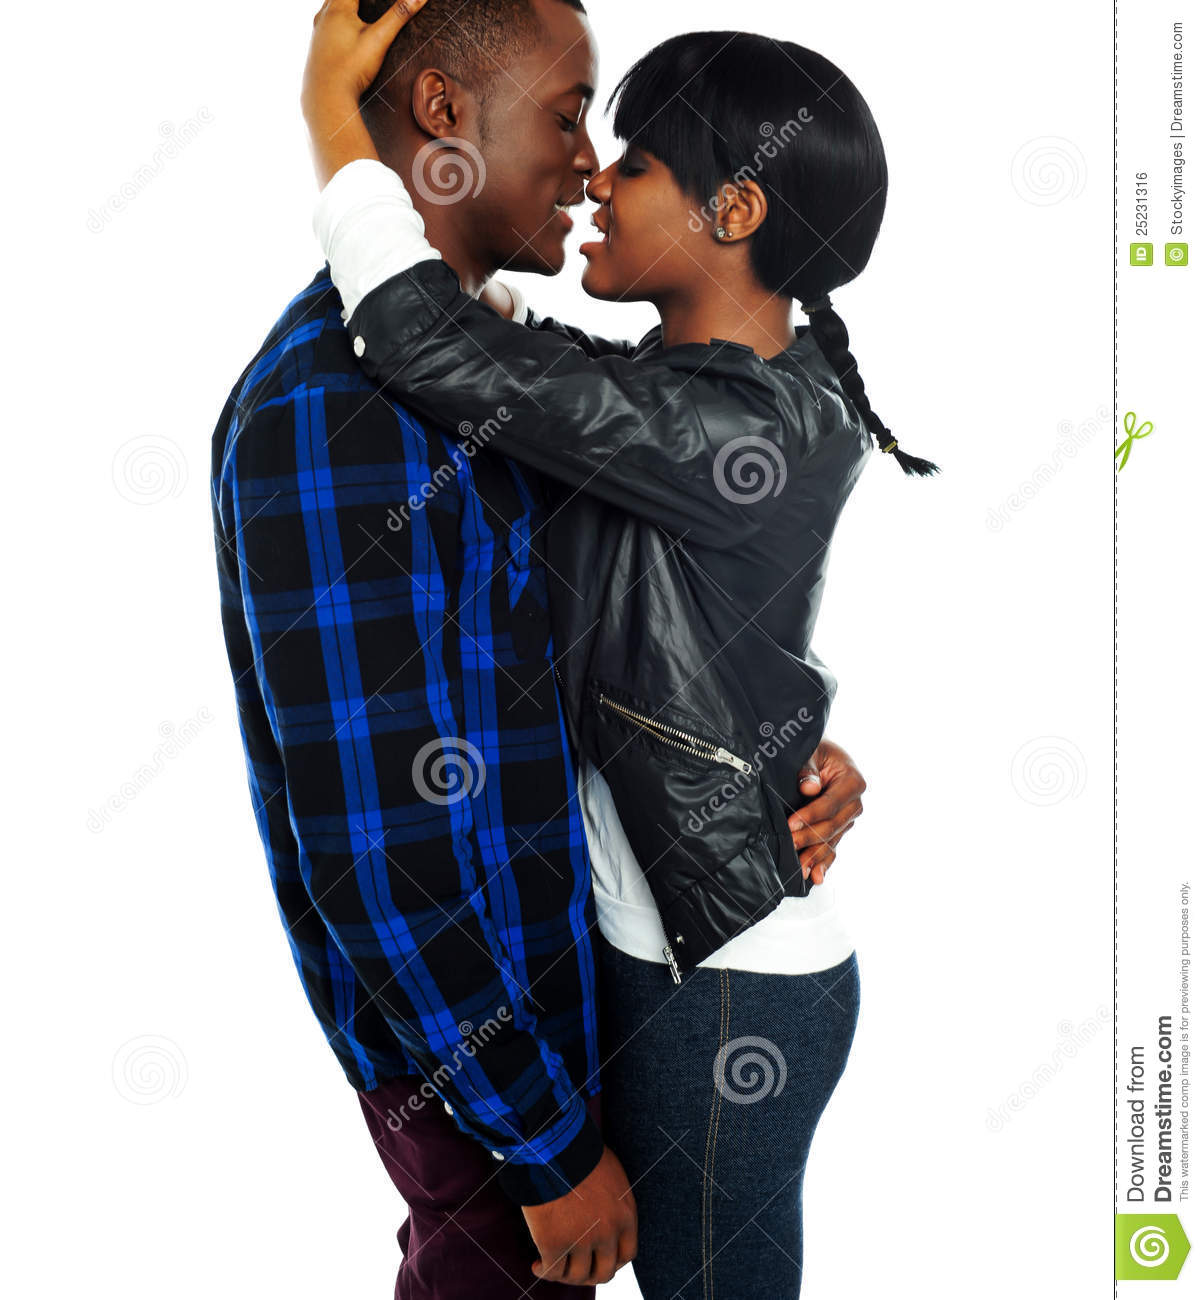 africans caught making love